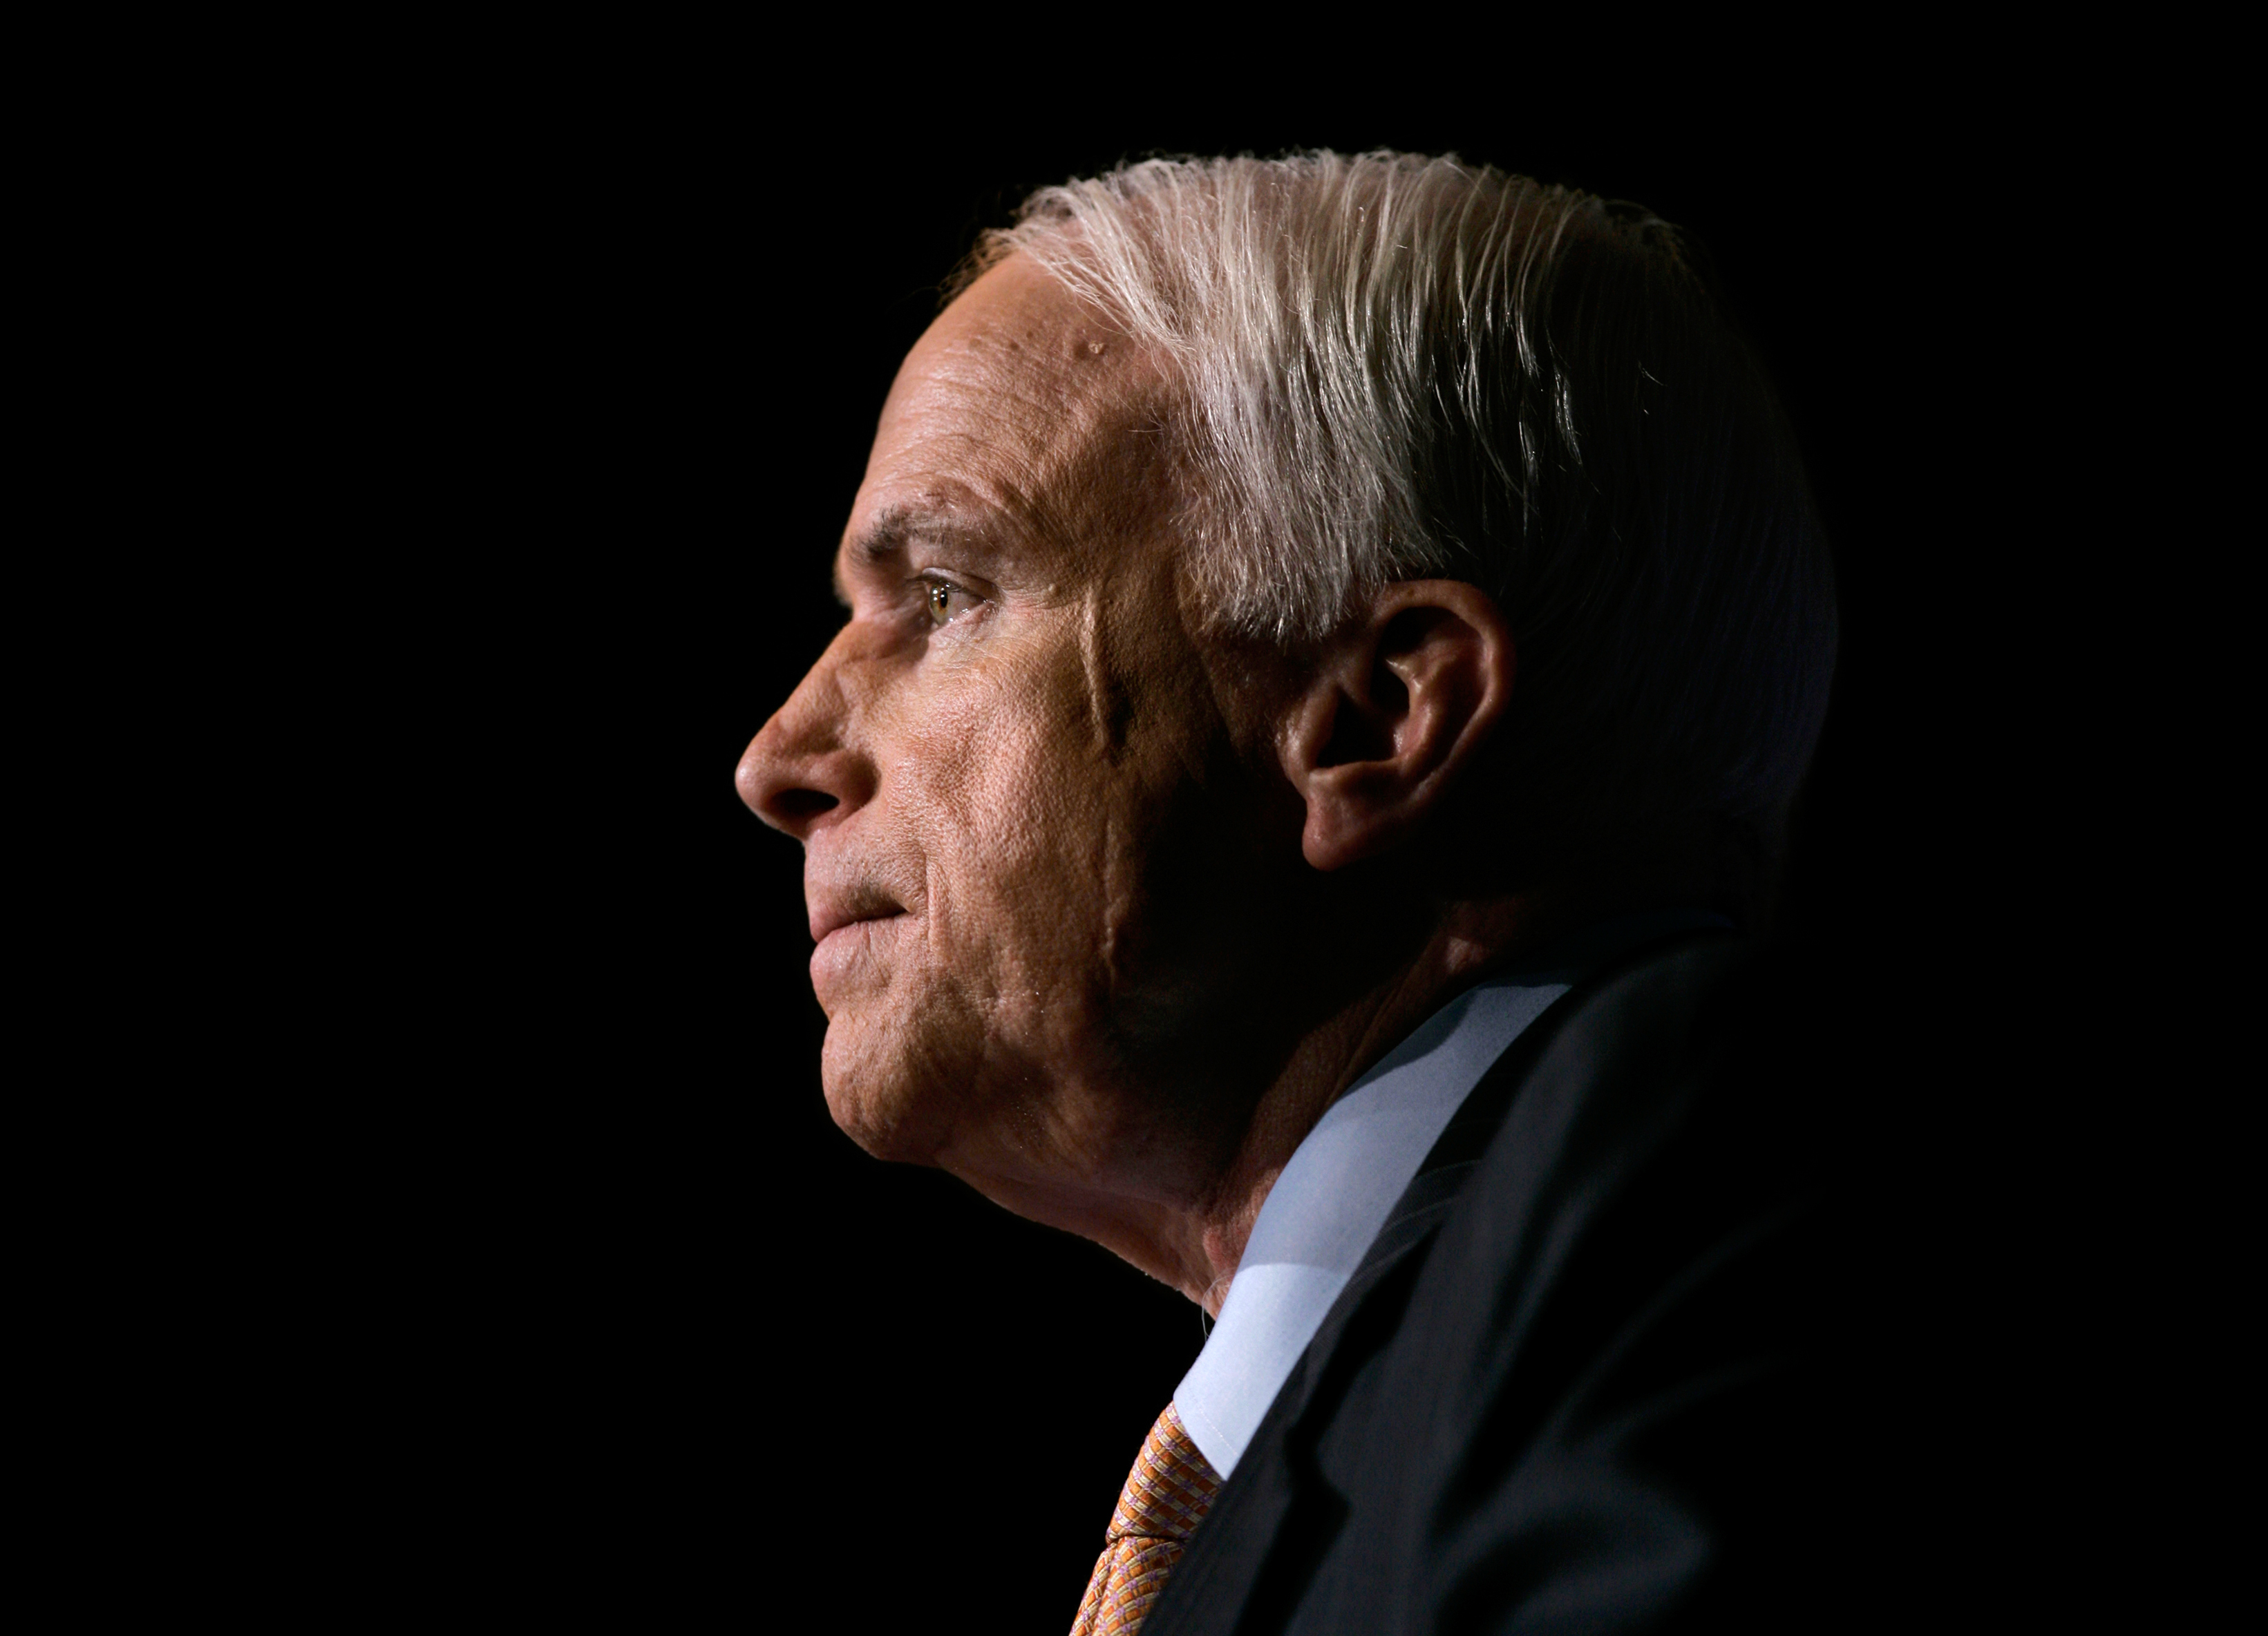 Sen. John McCain's death removes one of the few remaining Vietnam-era veterans from national elected office, a fact that the senator lamented in a CNN interview in spring 2017. He said he hoped the next generation of service members from the Iraq and Afghanistan wars could help rekindle civil debate on Capitol Hill. (J. Scott Applewhite/AP)